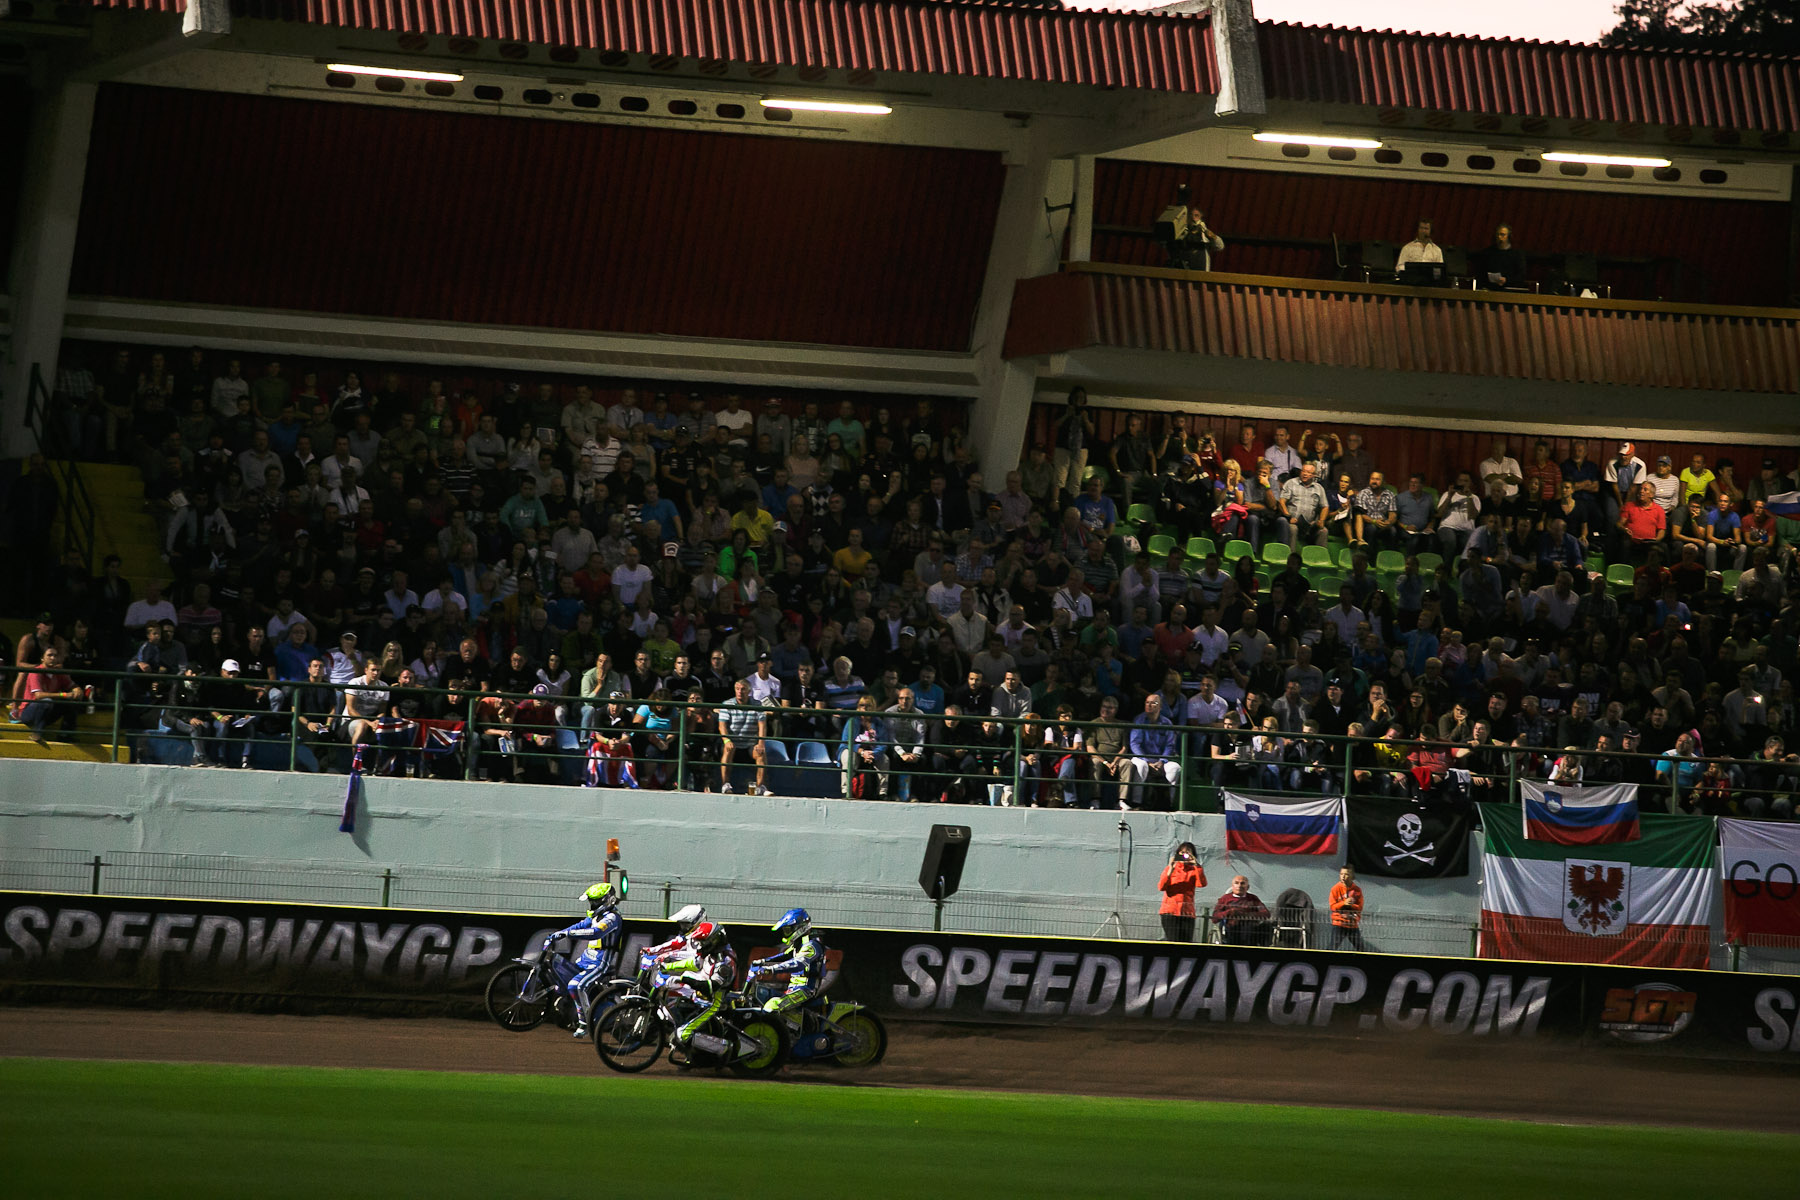 Chris Holder of Australia, Krzysztof Kasprzak of Poland, Peter Kildemand of Denmark and Matej Zagar of Slovenia compete in the Mitas Slovenian FIM Speedway Grand Prix at Matija Gubec Stadium in Krsko, Slovenia, Sep. 12, 2015.